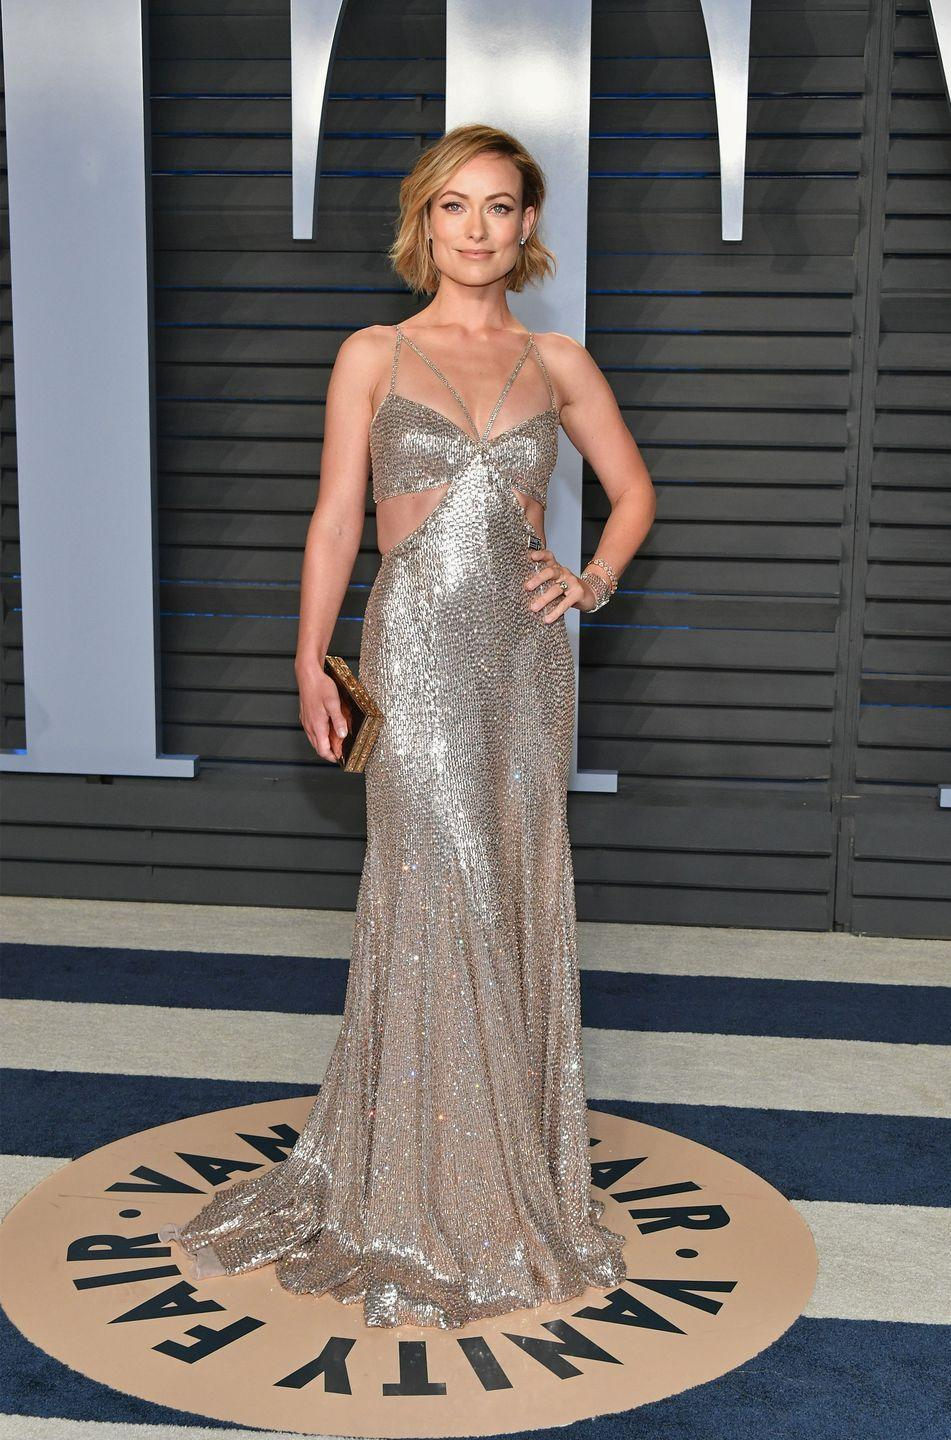 <p>Wilde wore a dazzling Roberto Cavalli Couture gold dress complete with a Time's Up pin for the celebrity-filled event and dare we say, outshone the rest of the guests. </p>